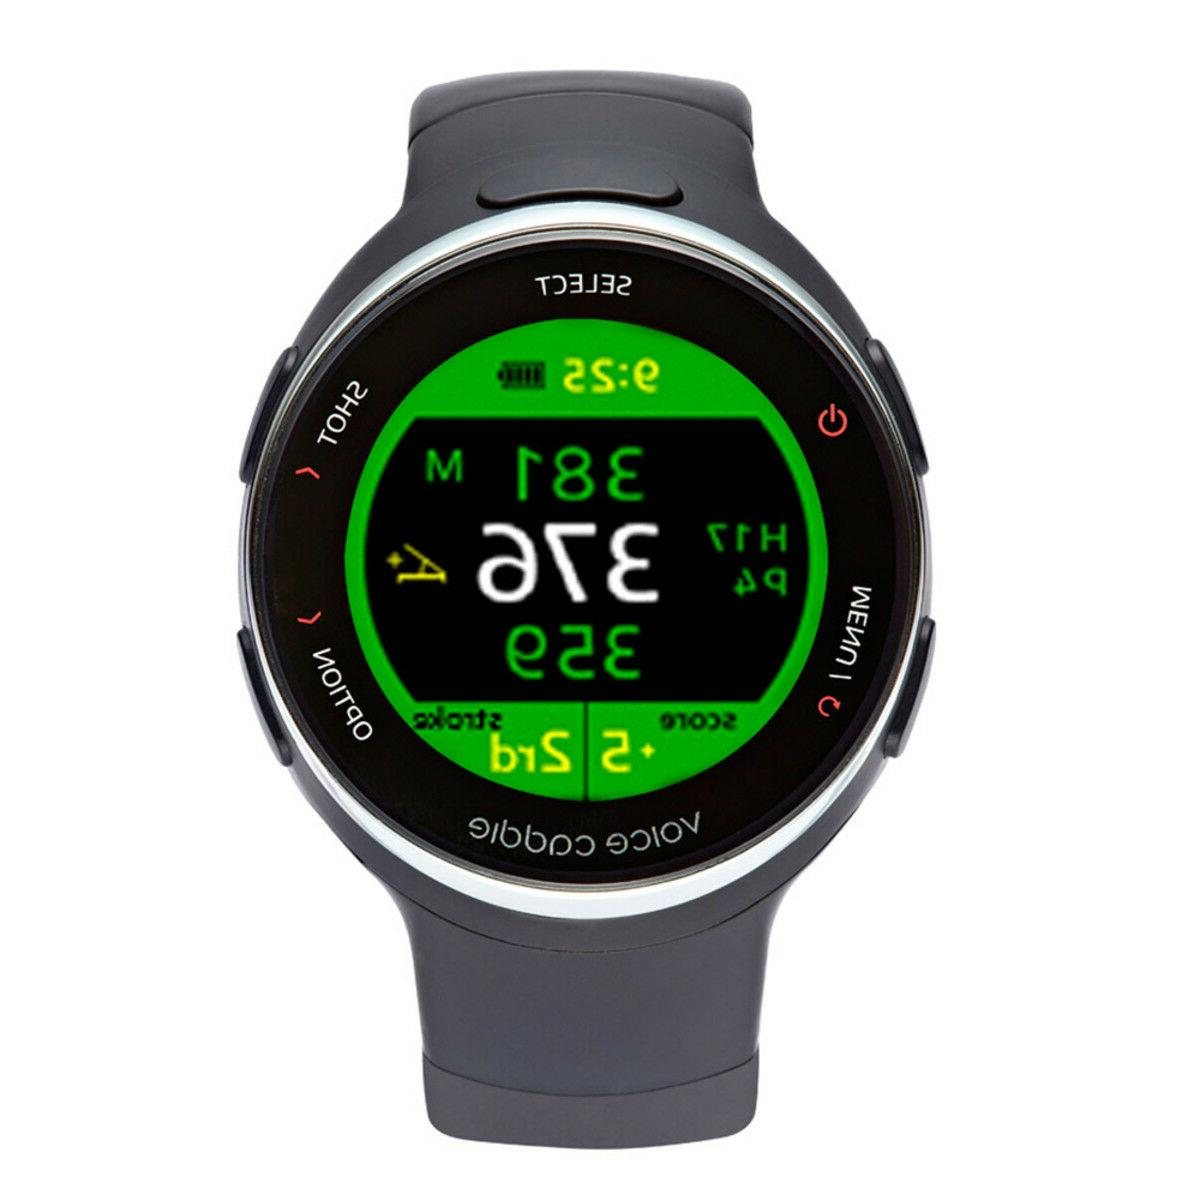 t3 watch golf distance meter there are